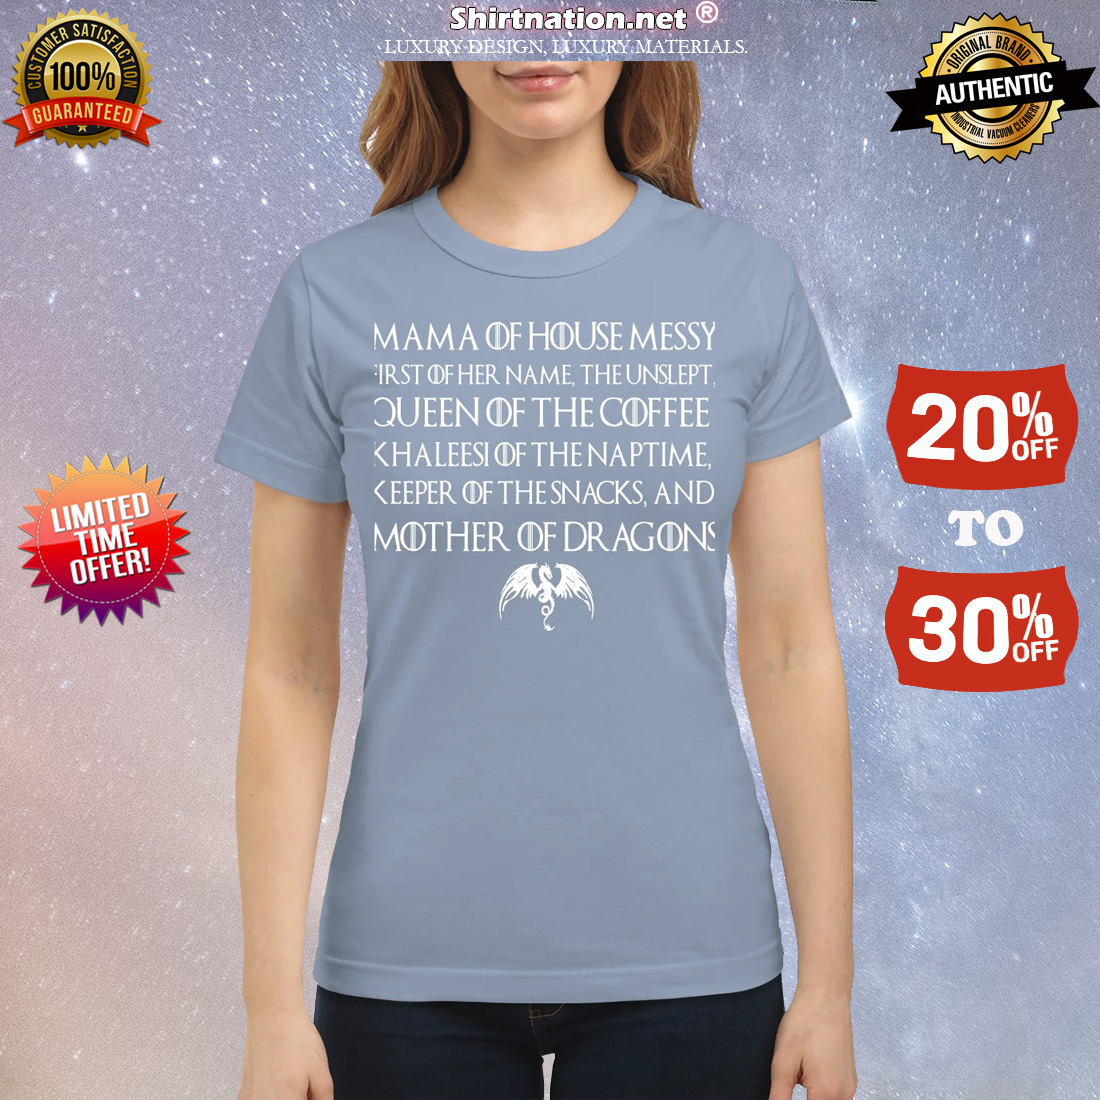 Game of Thrones Mama of house messy first of her name the unslept queen of the coffee classic shirt